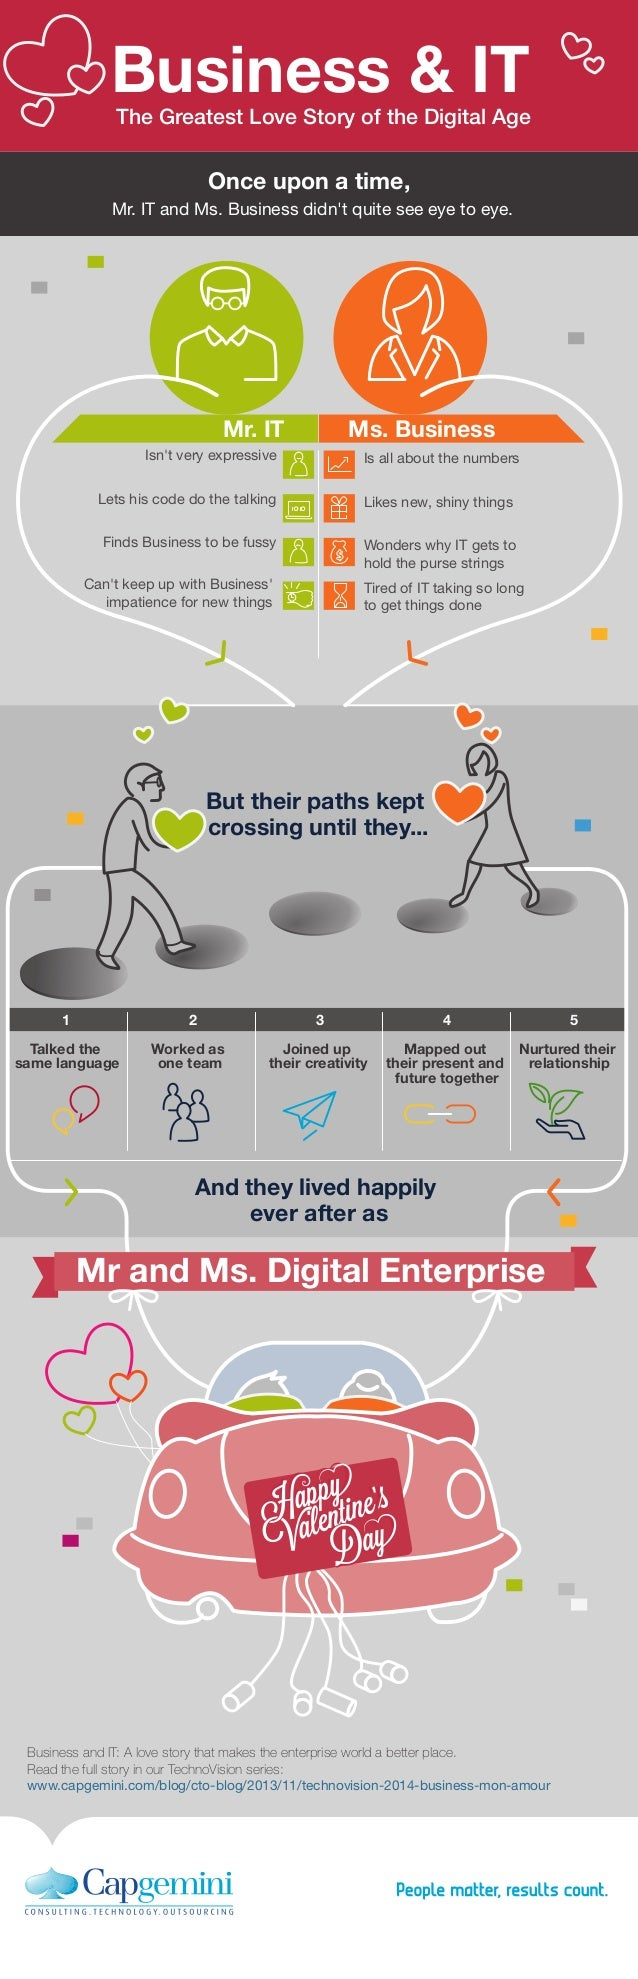 Business and IT: The greatest love story of the digital age